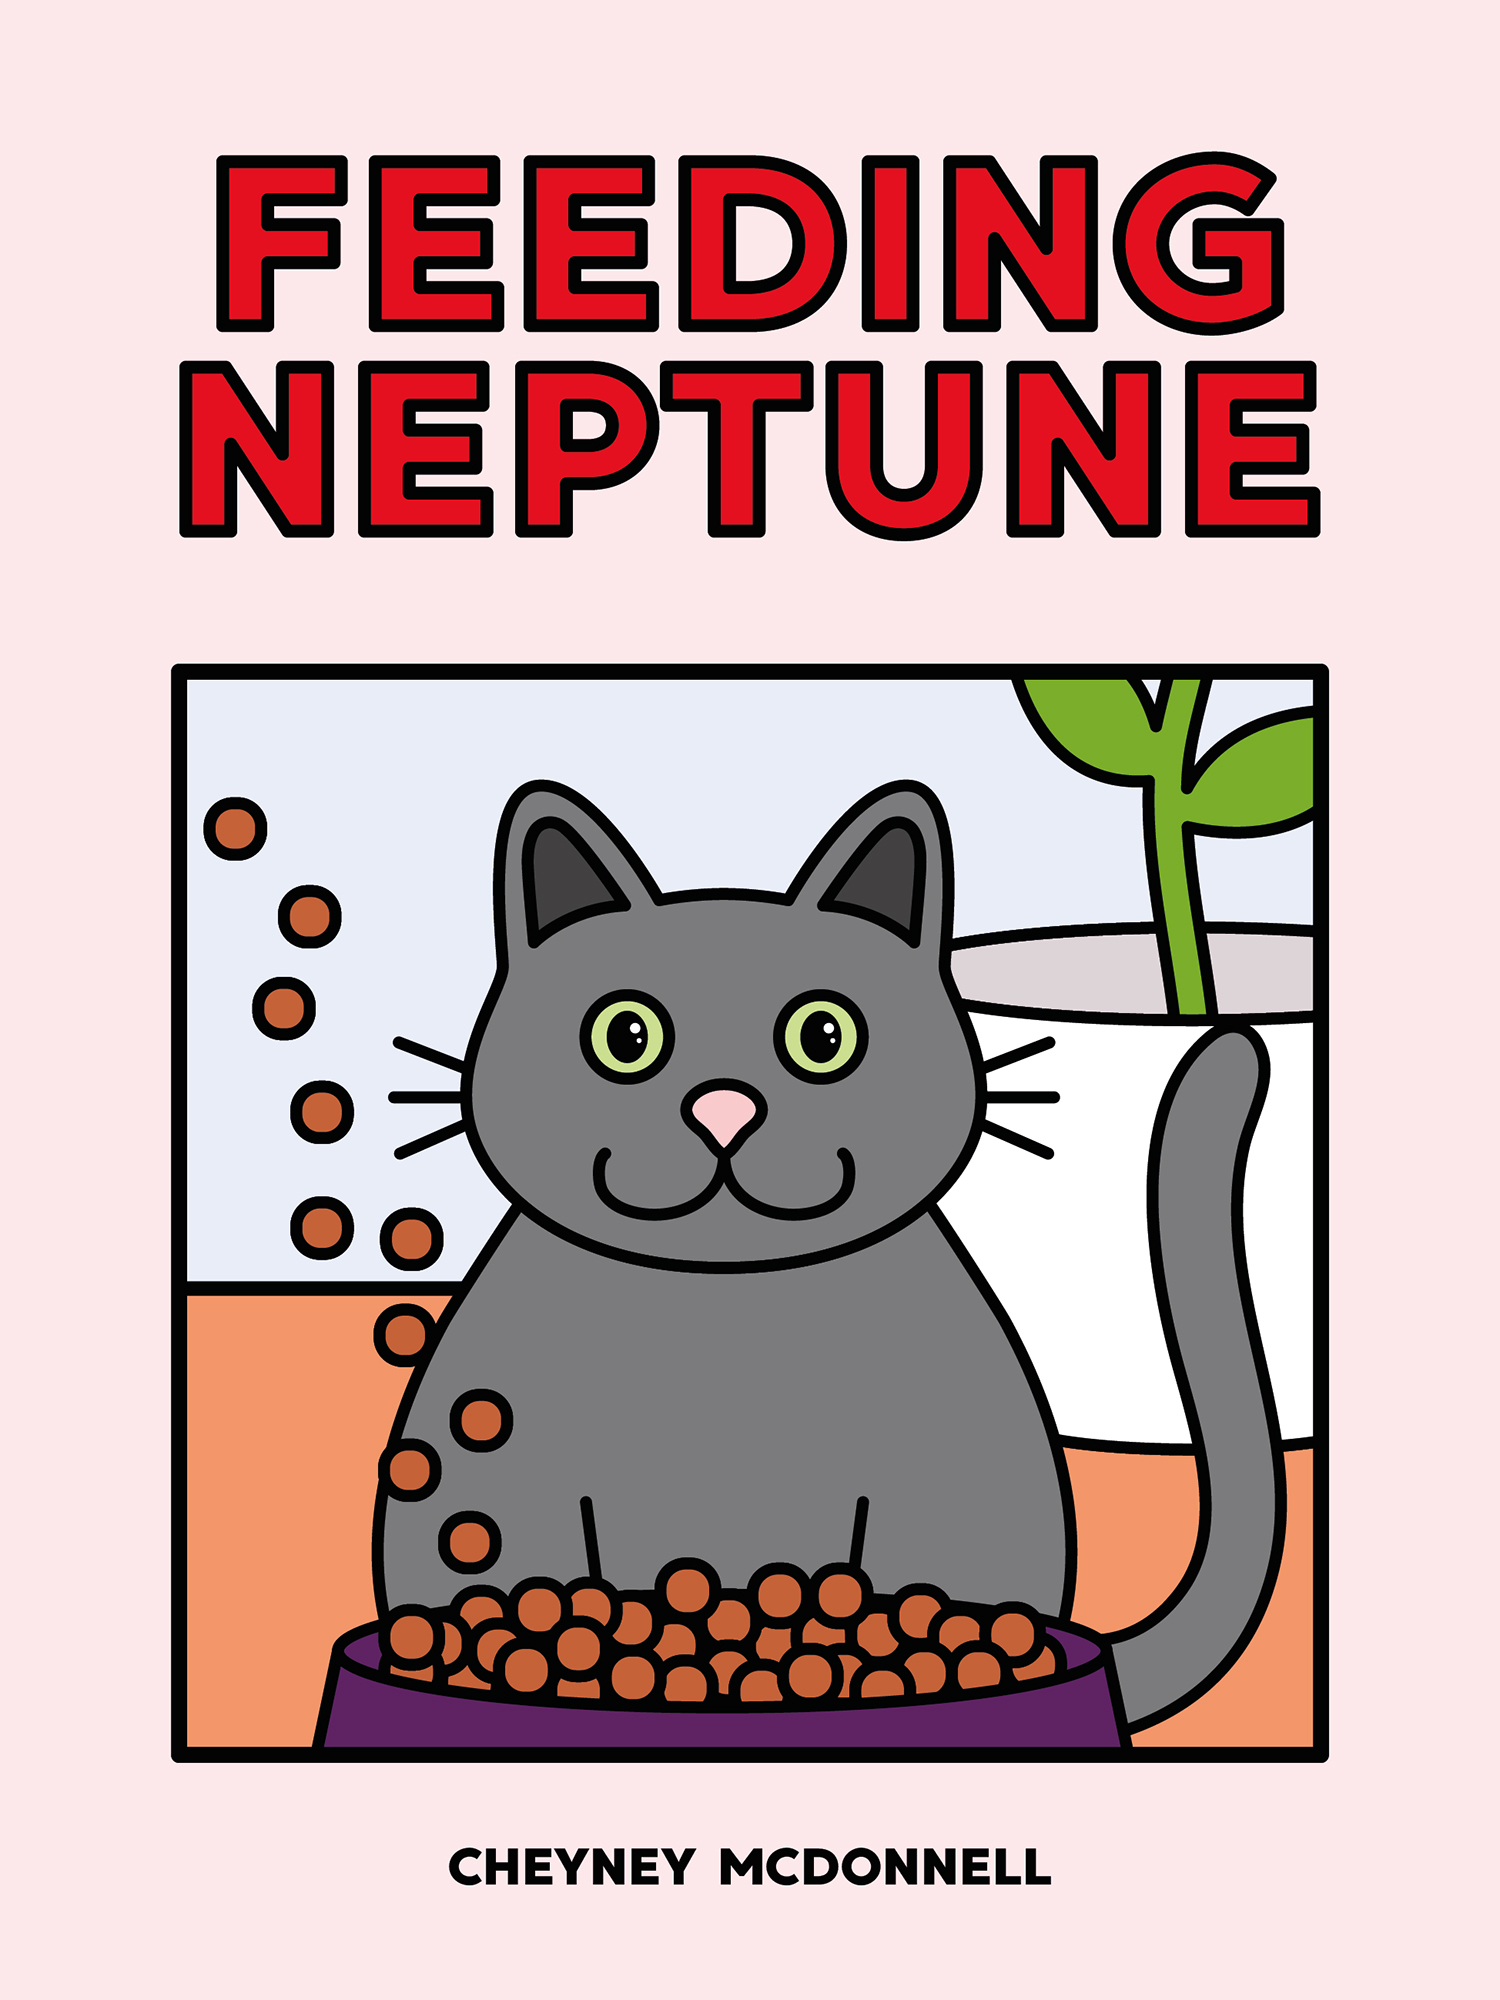 Feeding Neptune - A children's book I wrote and illustrated during a surge of creative energy